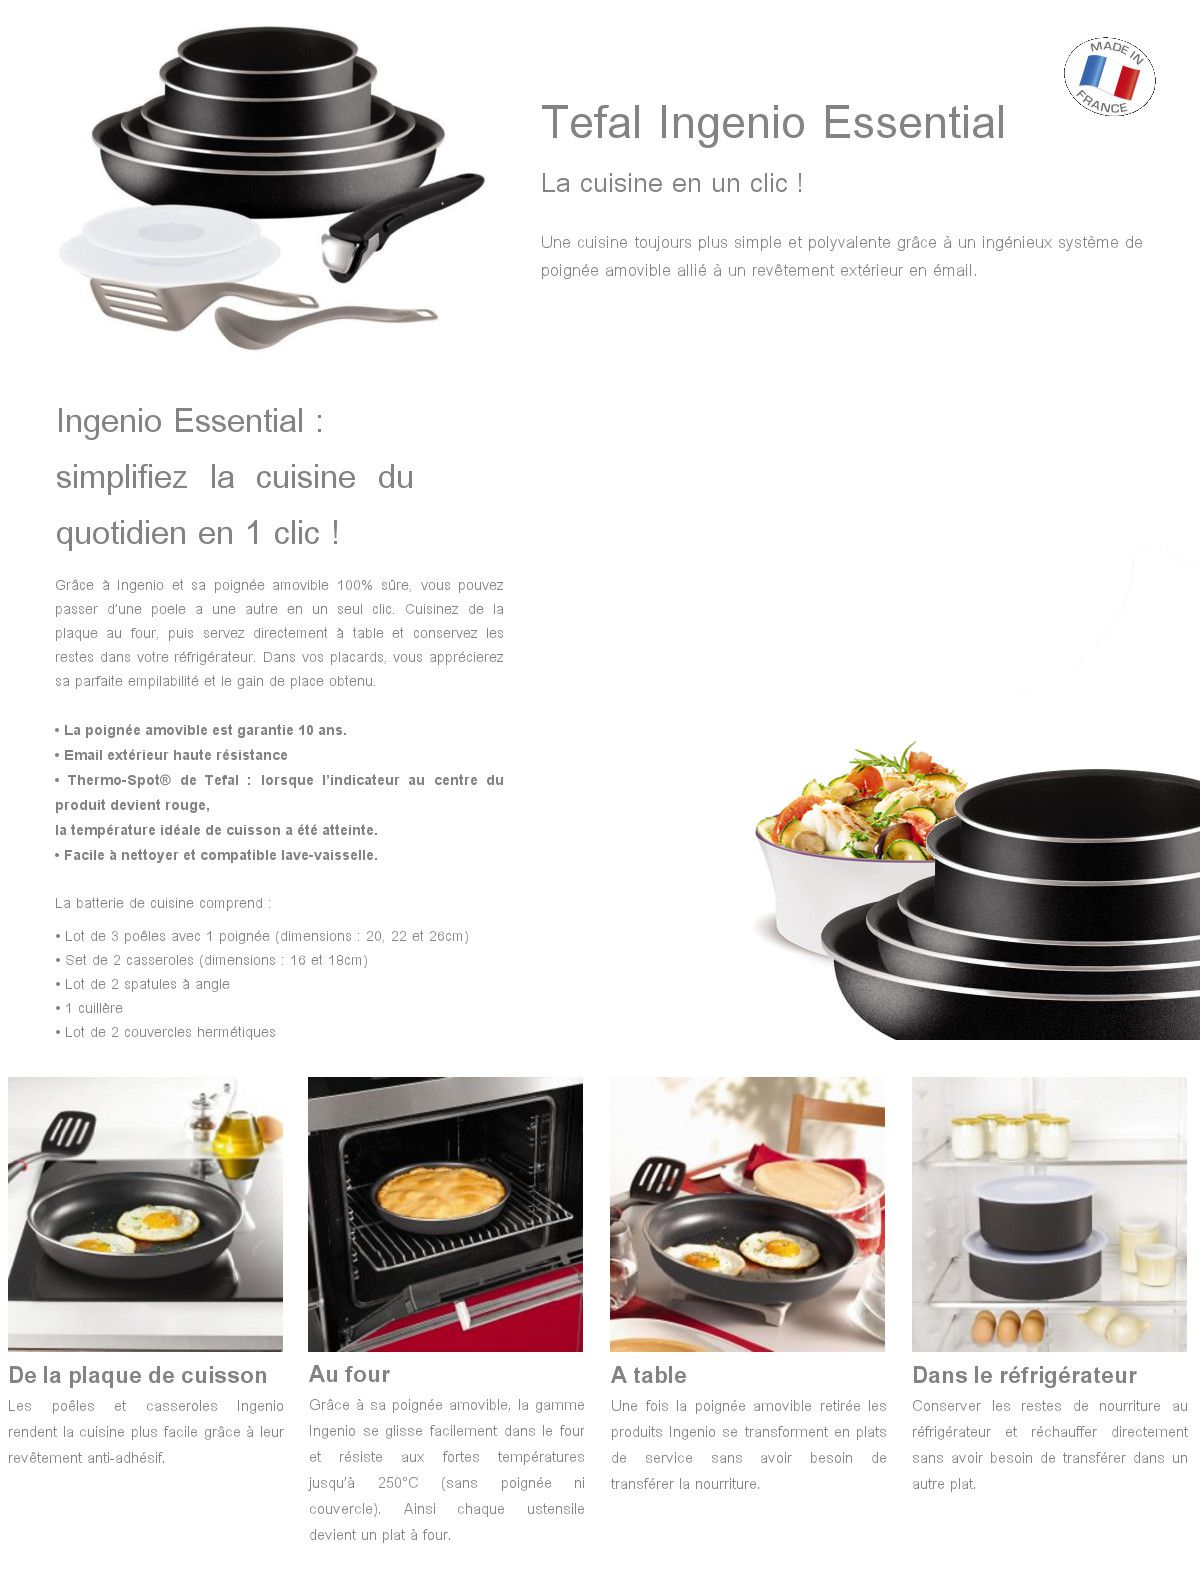 tefal ingenio essential batterie de cuisine 10 pi ces l2008902 16 18 20 22 26cm tous feux sauf. Black Bedroom Furniture Sets. Home Design Ideas